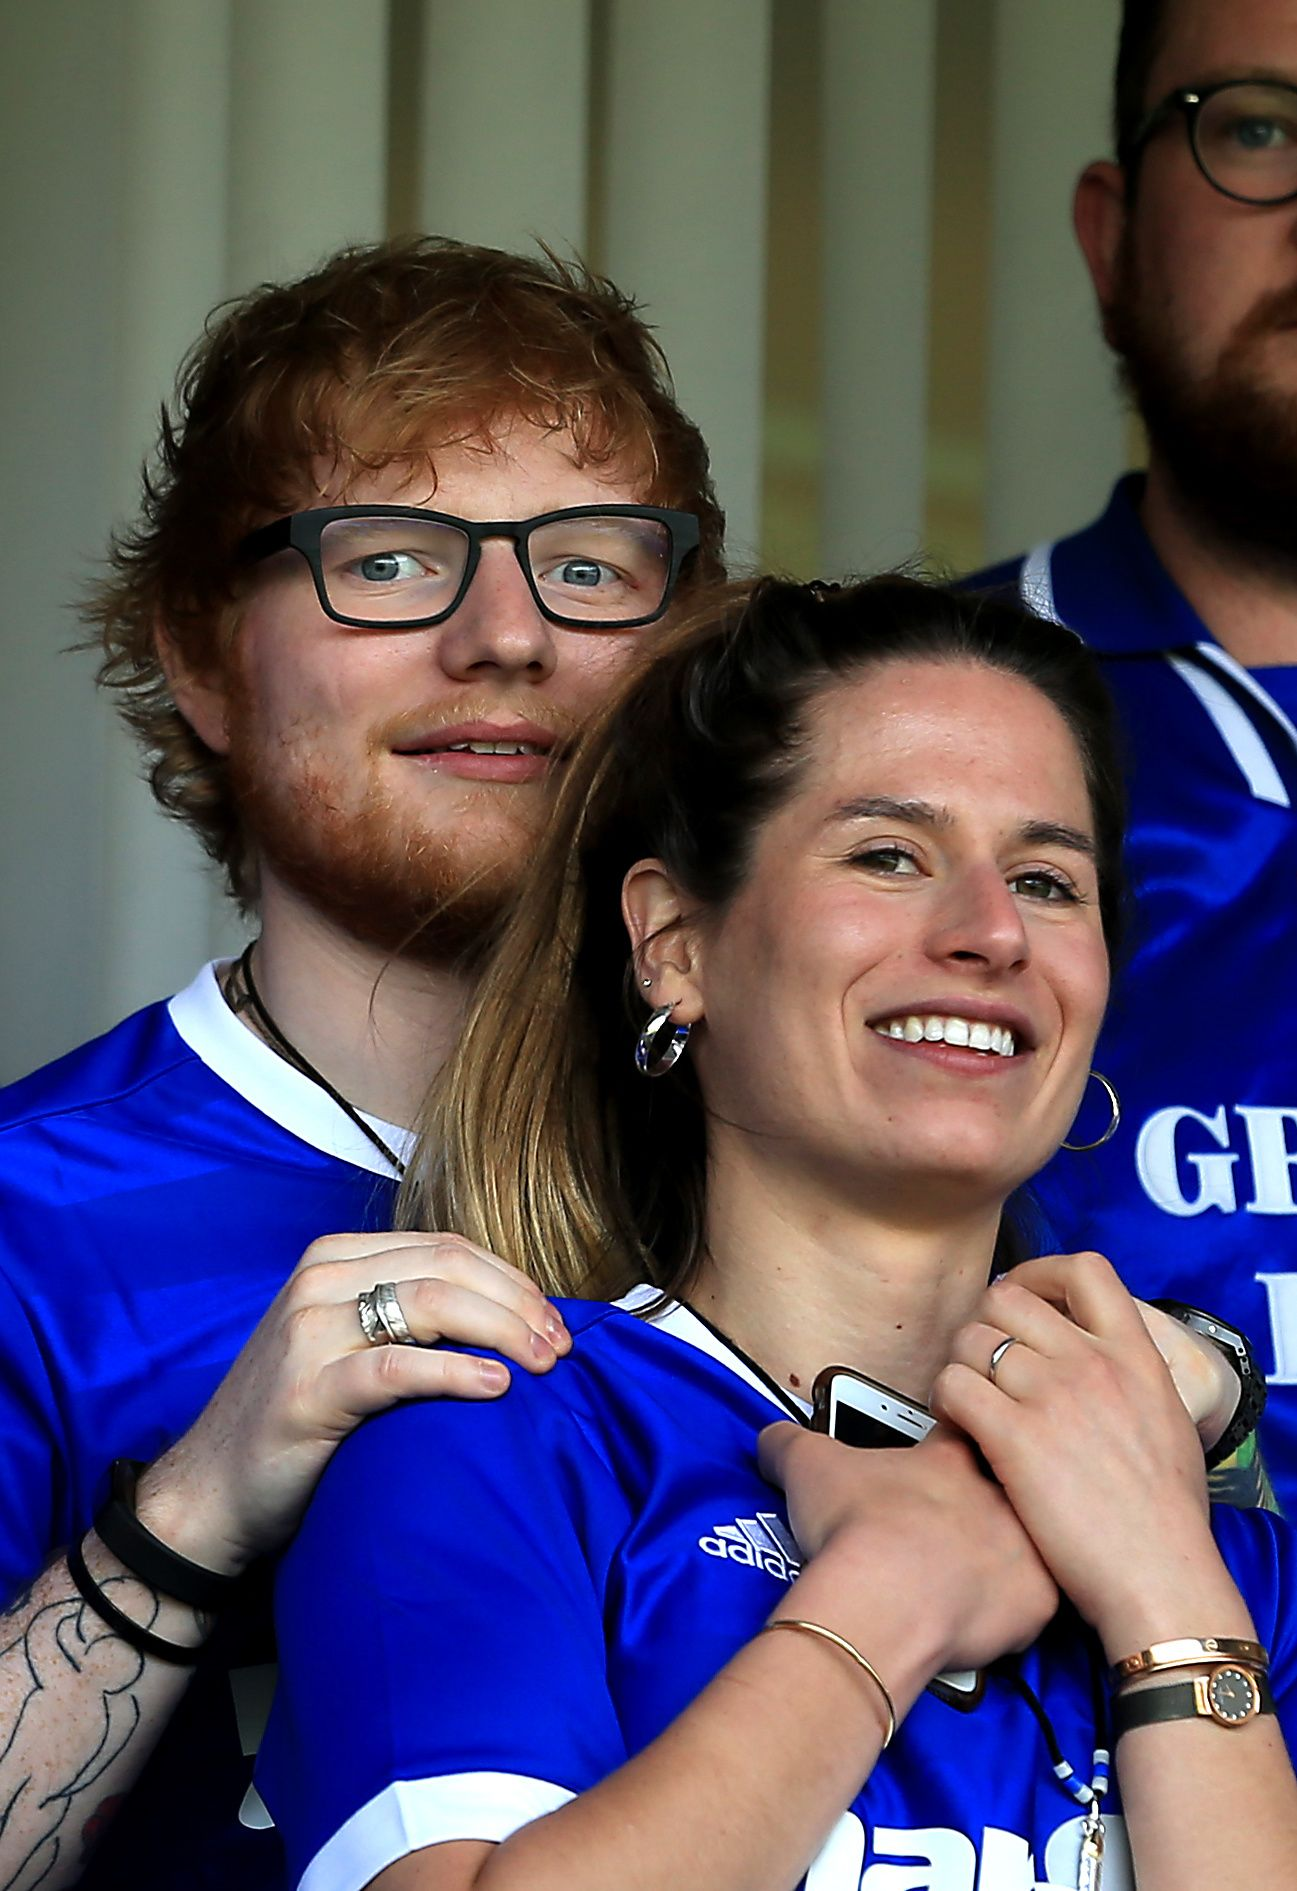 Ed Sheeran and wife Cherry Seaborn at the Sky Bet Championship match between Ipswich Town and Aston Villa at Portman Road on April 21, 2018 in Ipswich, England | Photo: Getty Images